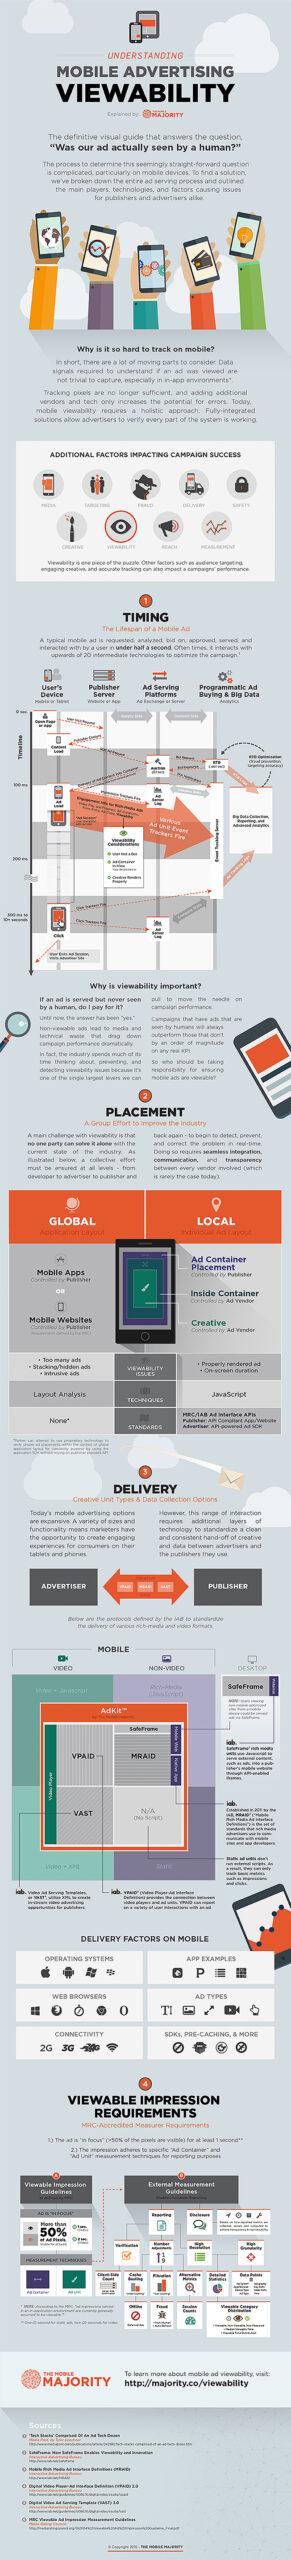 Infográfico_mobileadvertising